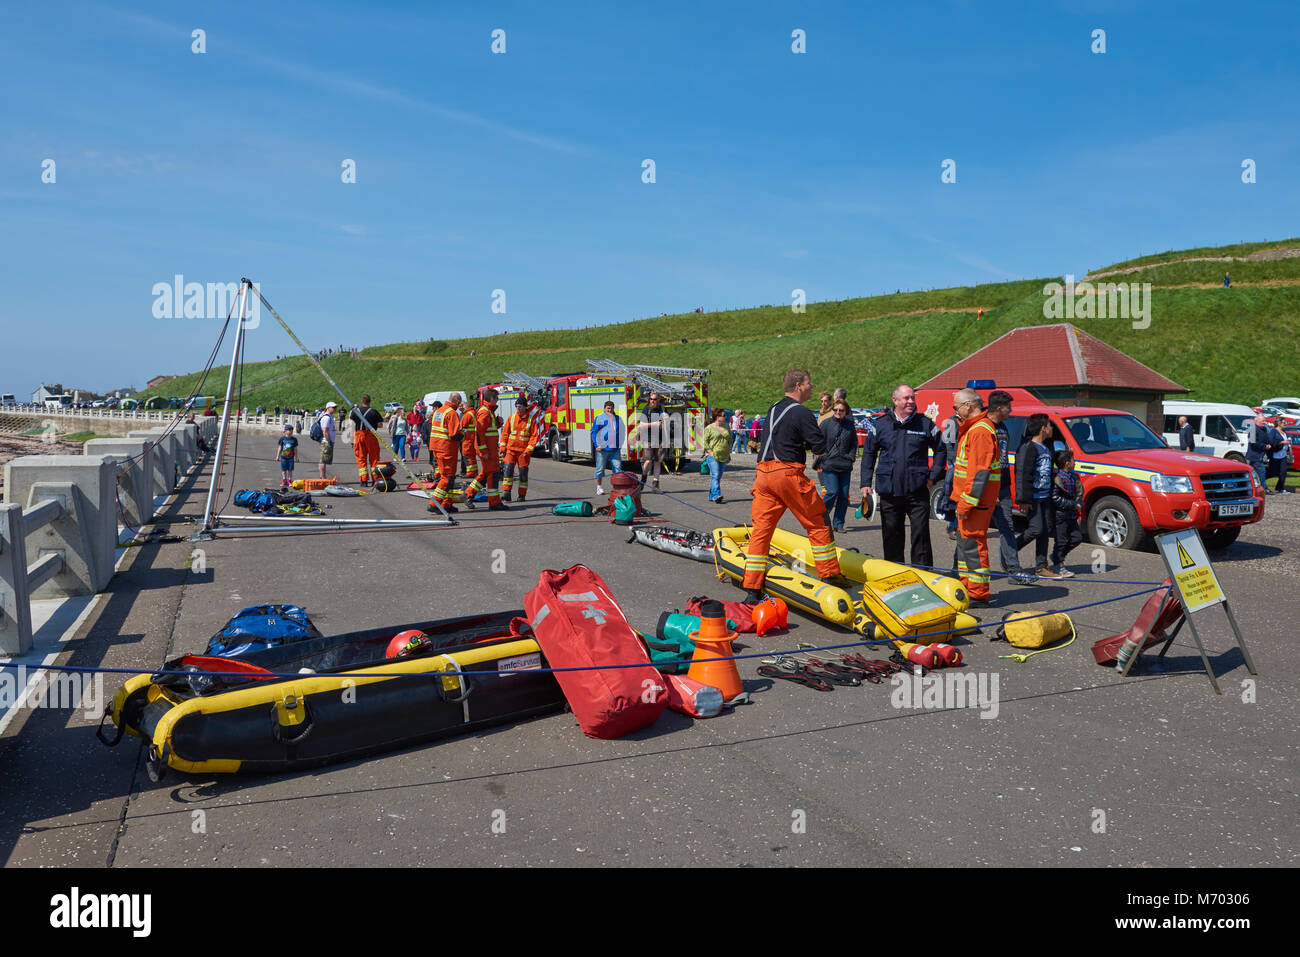 Tayside Fire and Rescue Team demonstrate their skills at a public event held at Victoria Park in Arbroath, Scotland. - Stock Image